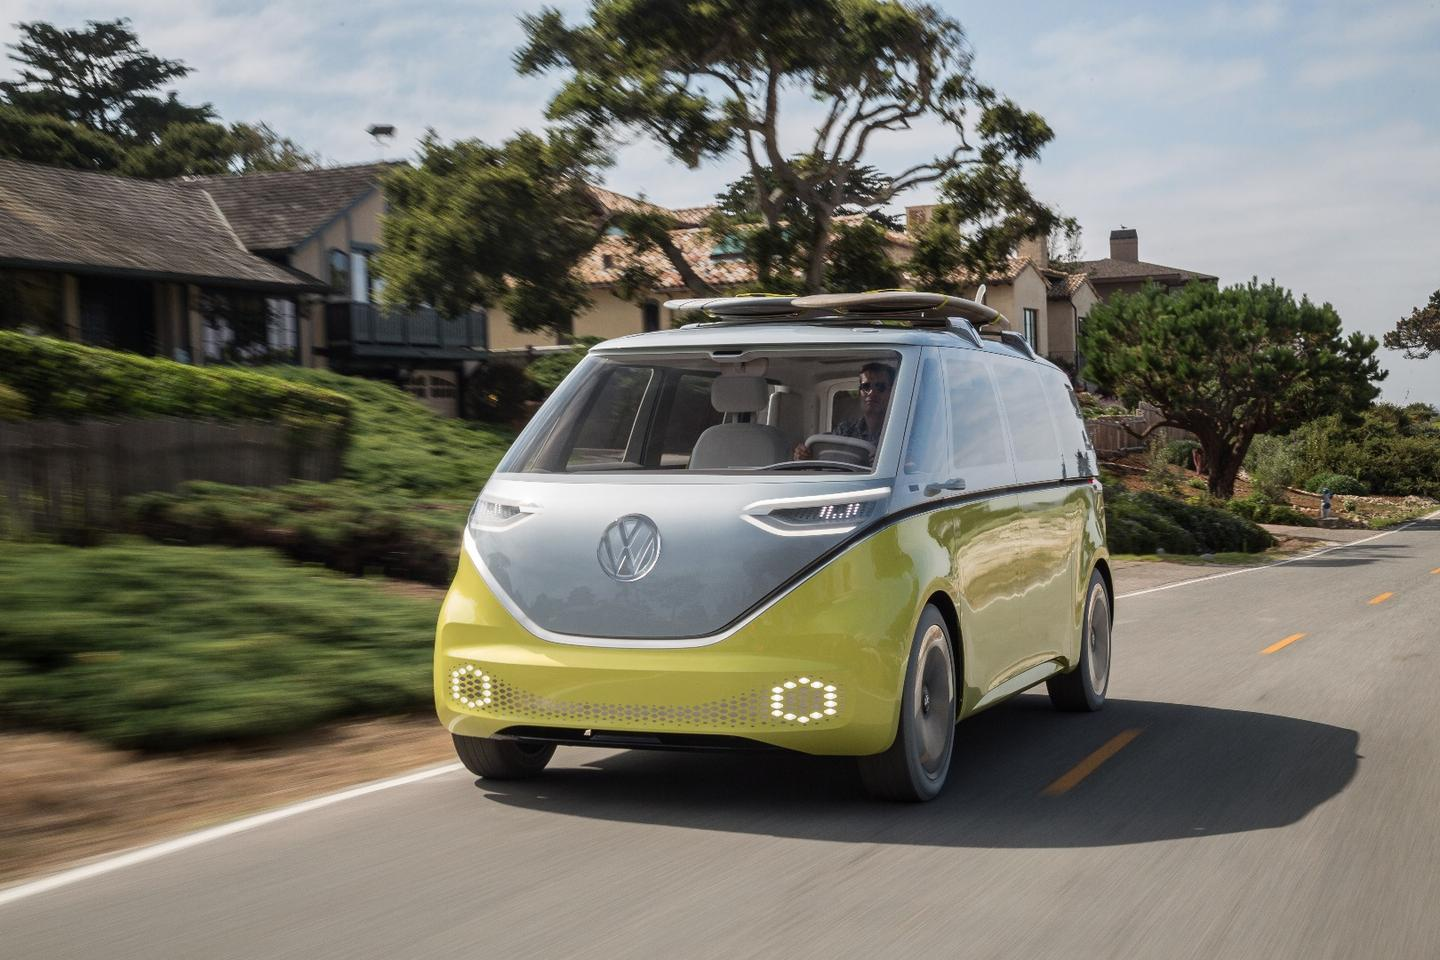 Volkswagen hinted at some degree of self-driving capability when announcing a production version of its I.D. Buzz electric Kombi van two years ago